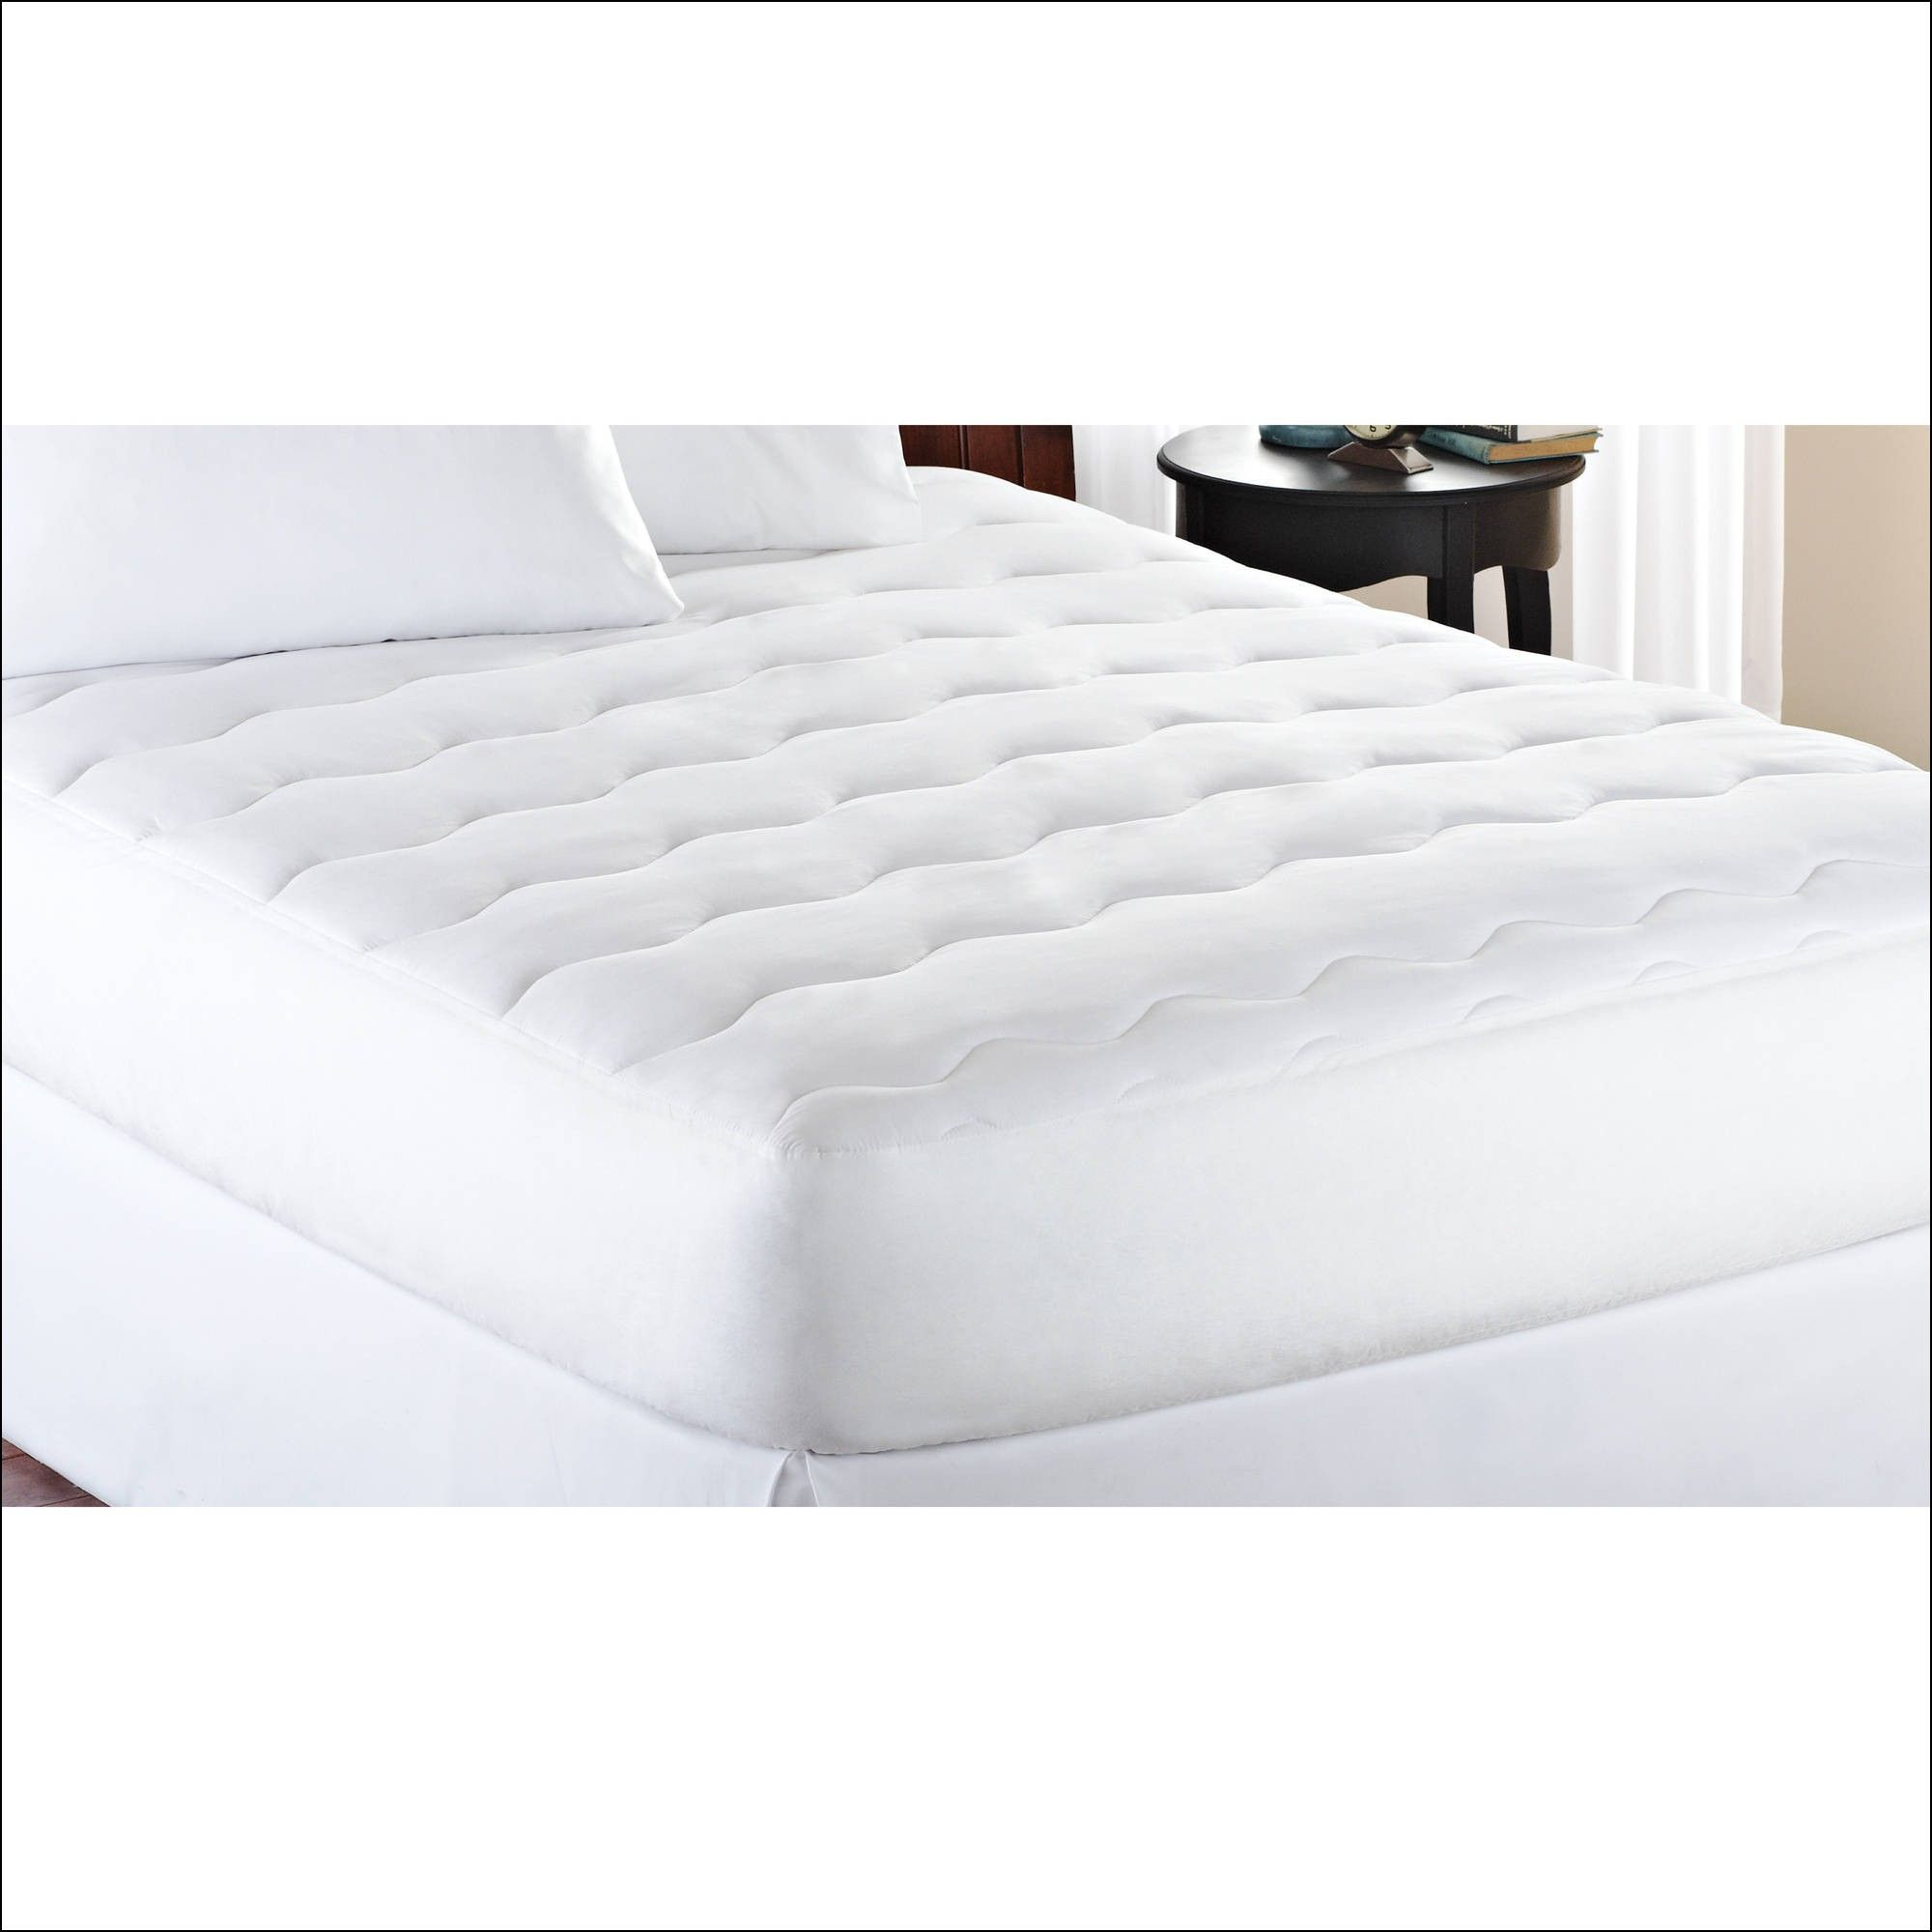 whistling product only cay super ultra mattress silver plush luxury topper pillow pillowtop beautyrest